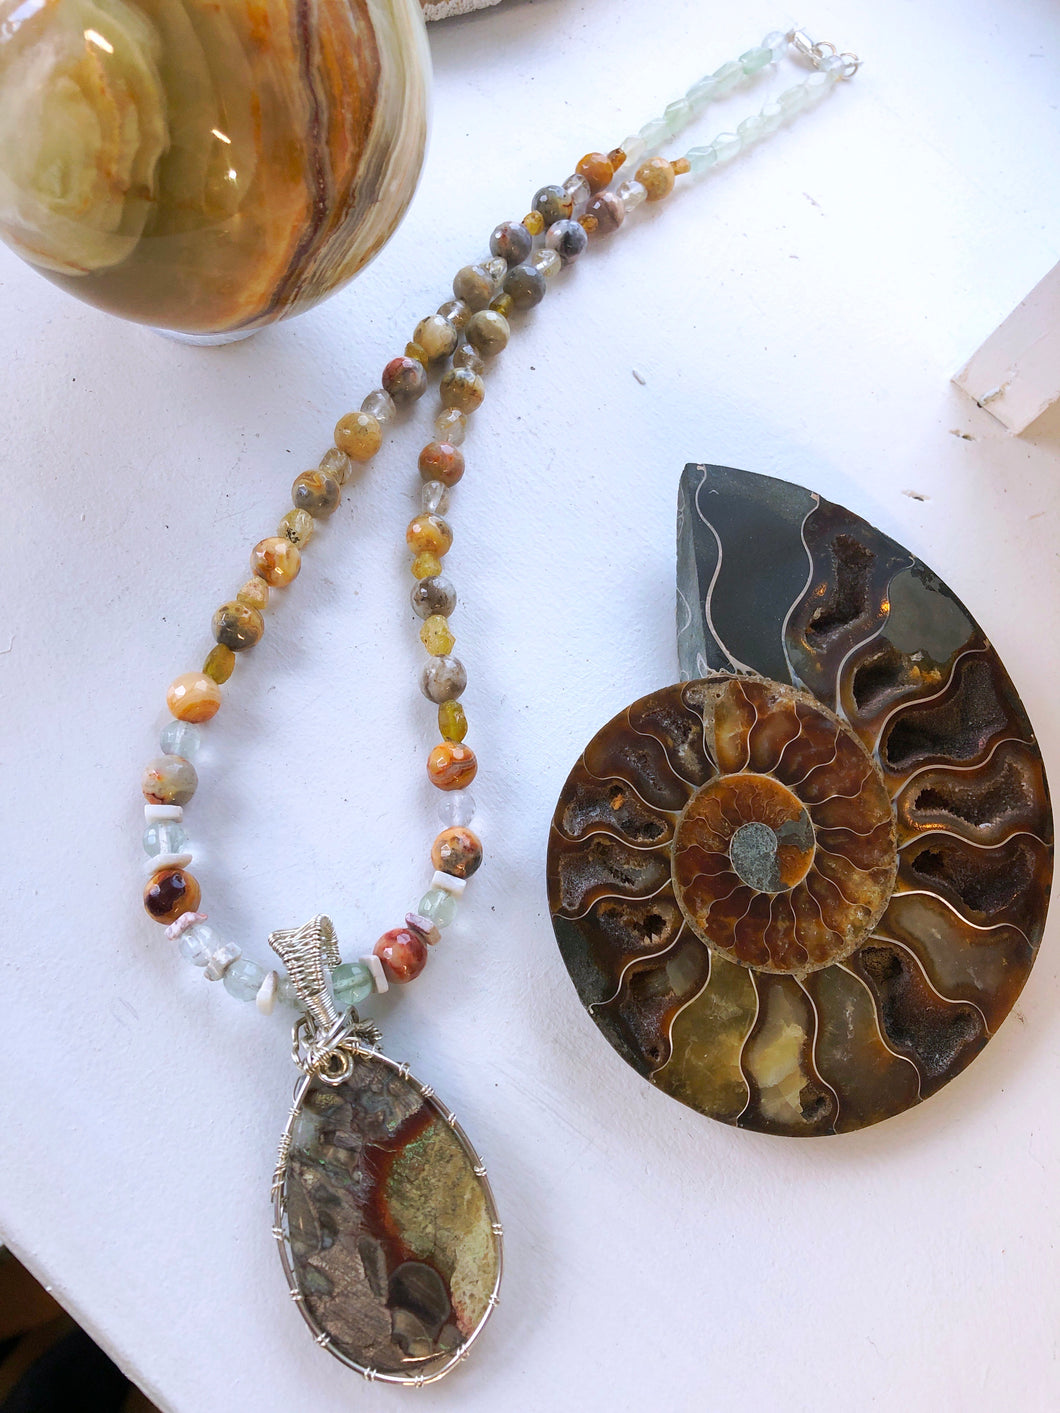 Necklace with mushroom jasper, picture jasper, Rutilated quartz, fluorite beads and jade.